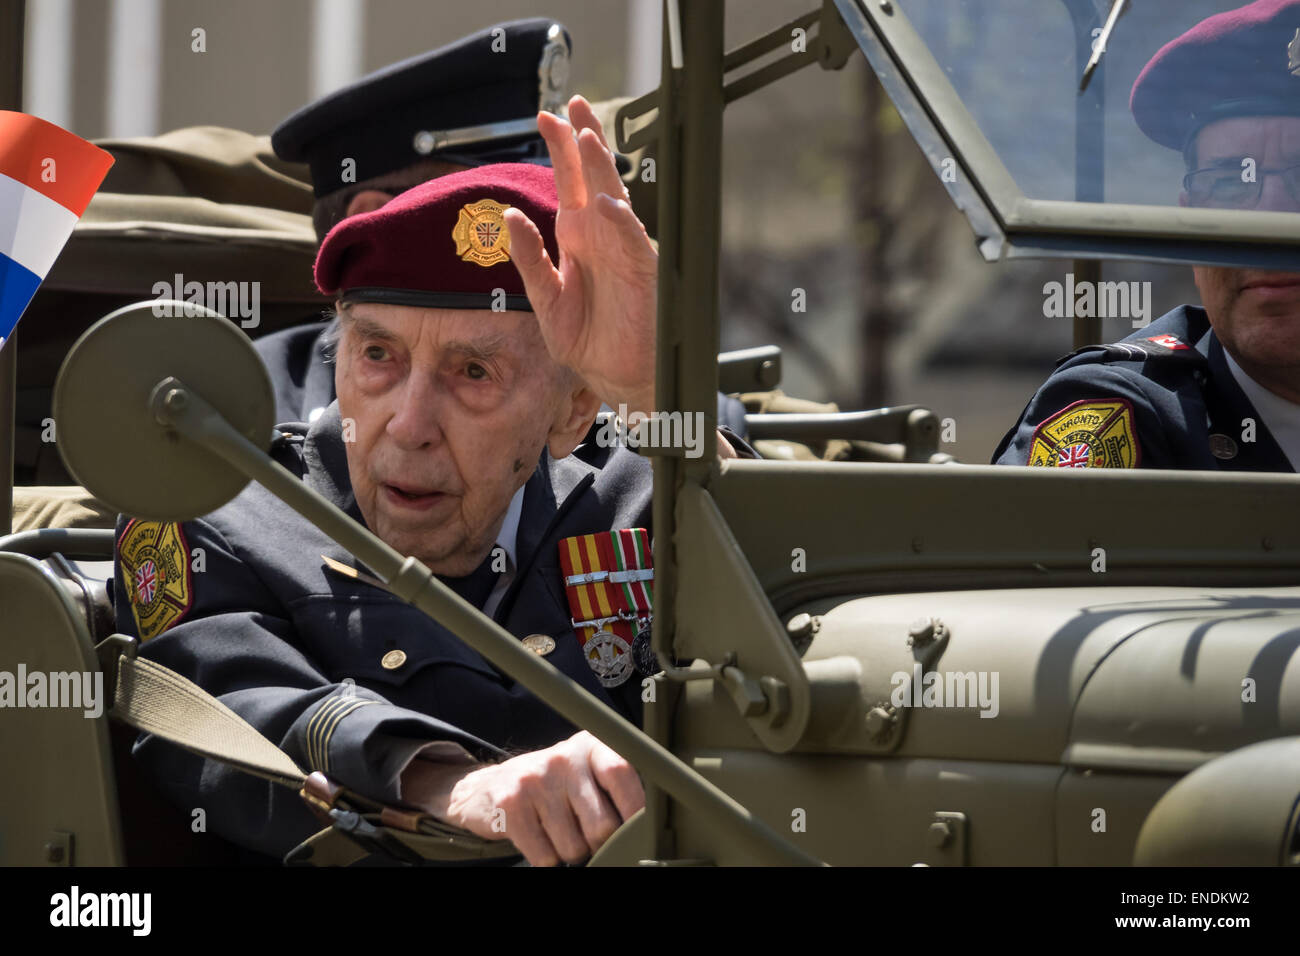 TORONTO, CANADA - MAY 2, 2015: A veteran passes by. People celebrate the 70th anniversary of the end of the Second - Stock Image